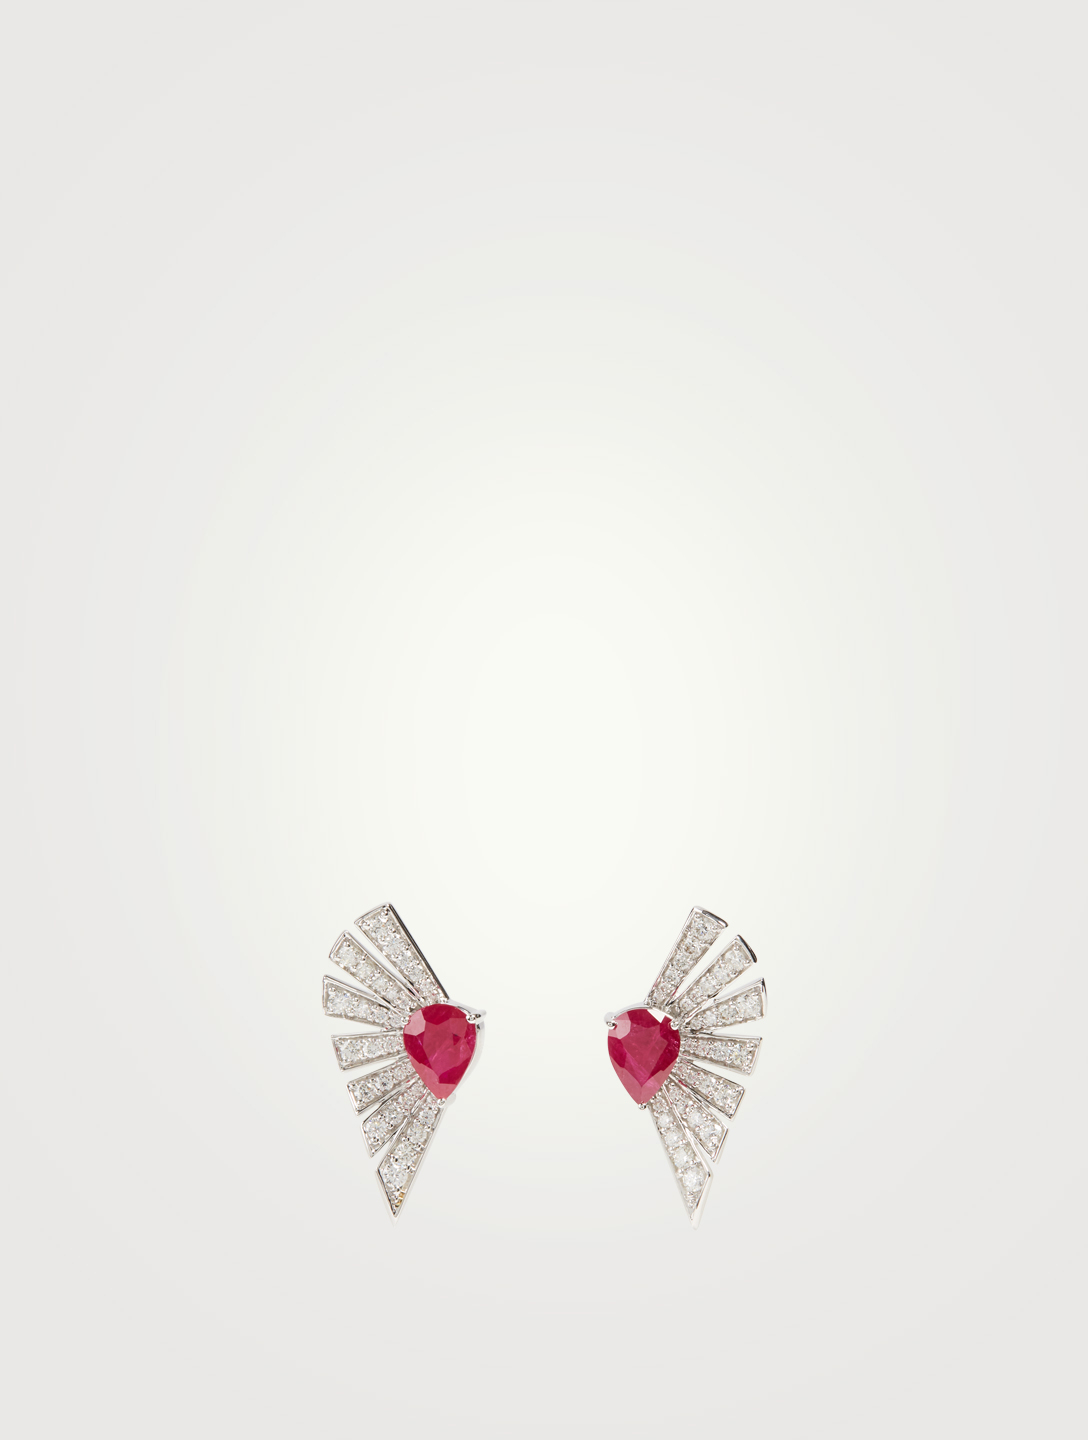 HUEB Labyrinth 18K White Gold Earrings With Diamonds And Rubies Women's Metallic